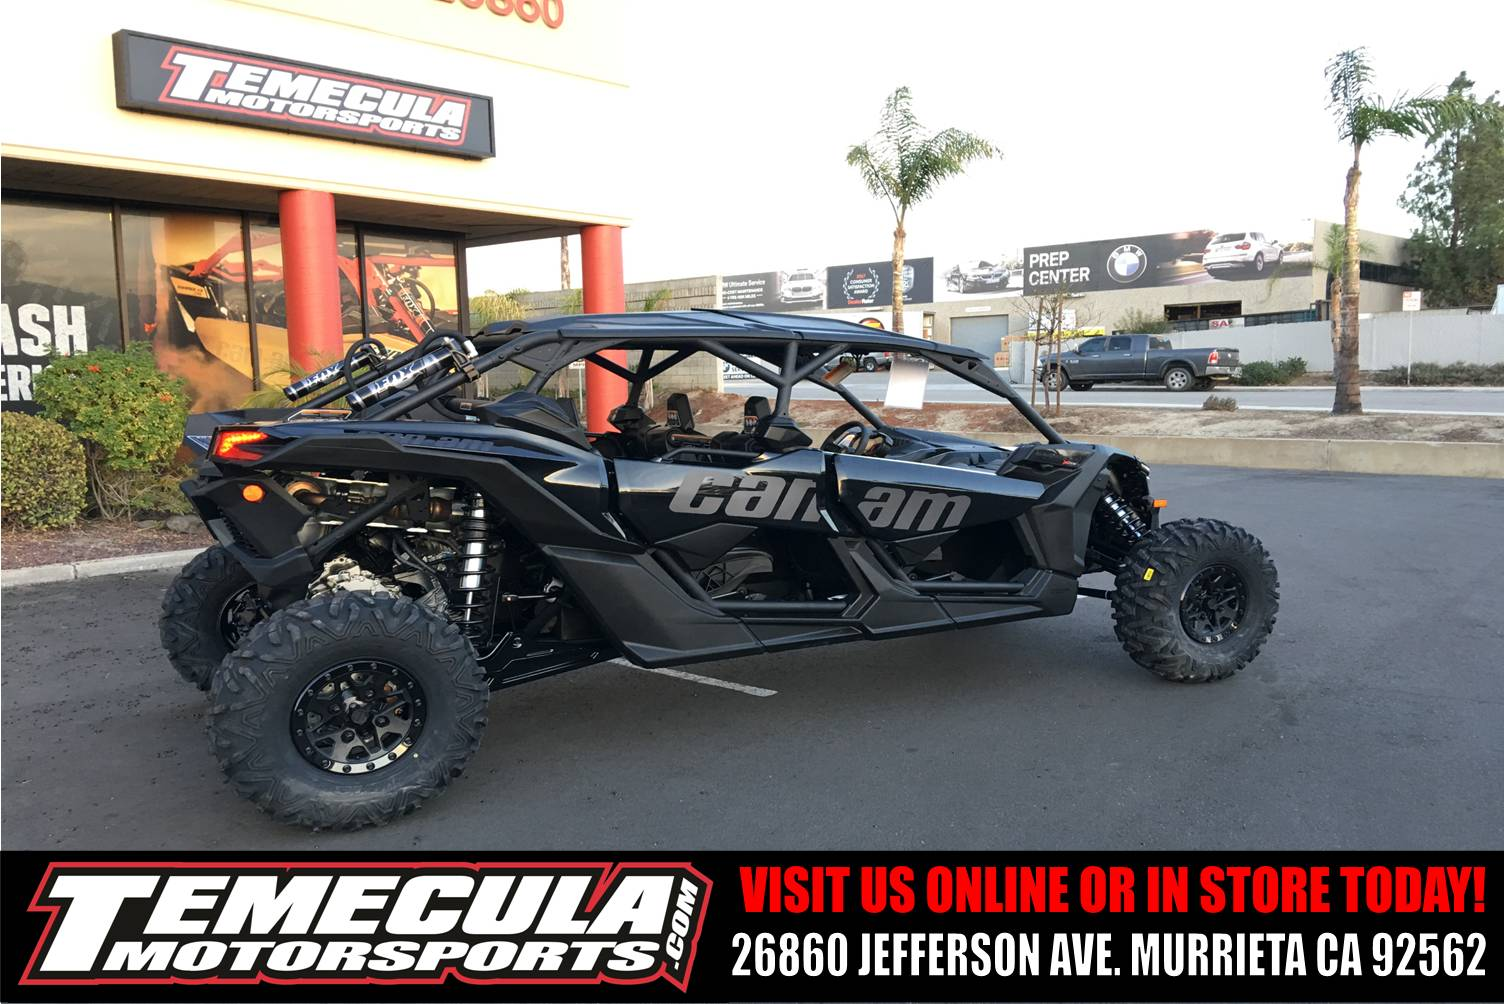 New 2018 Can-Am Maverick X3 Max X rs Turbo R Utility Vehicles in ...